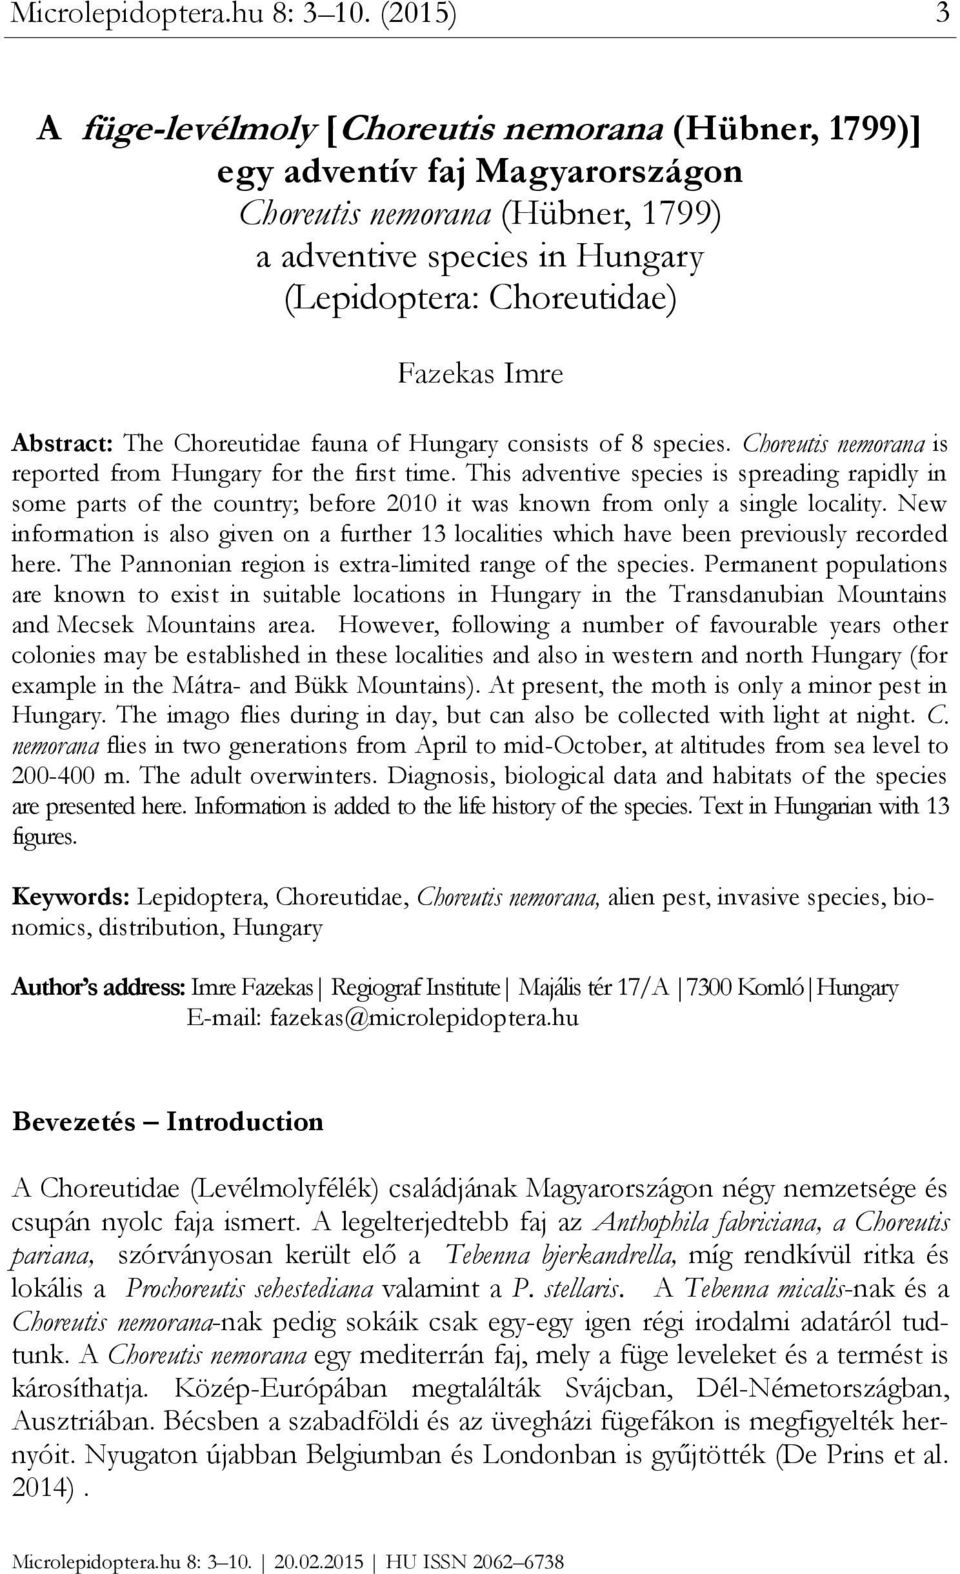 Abstract: The Choreutidae fauna of Hungary consists of 8 species. Choreutis nemorana is reported from Hungary for the first time.